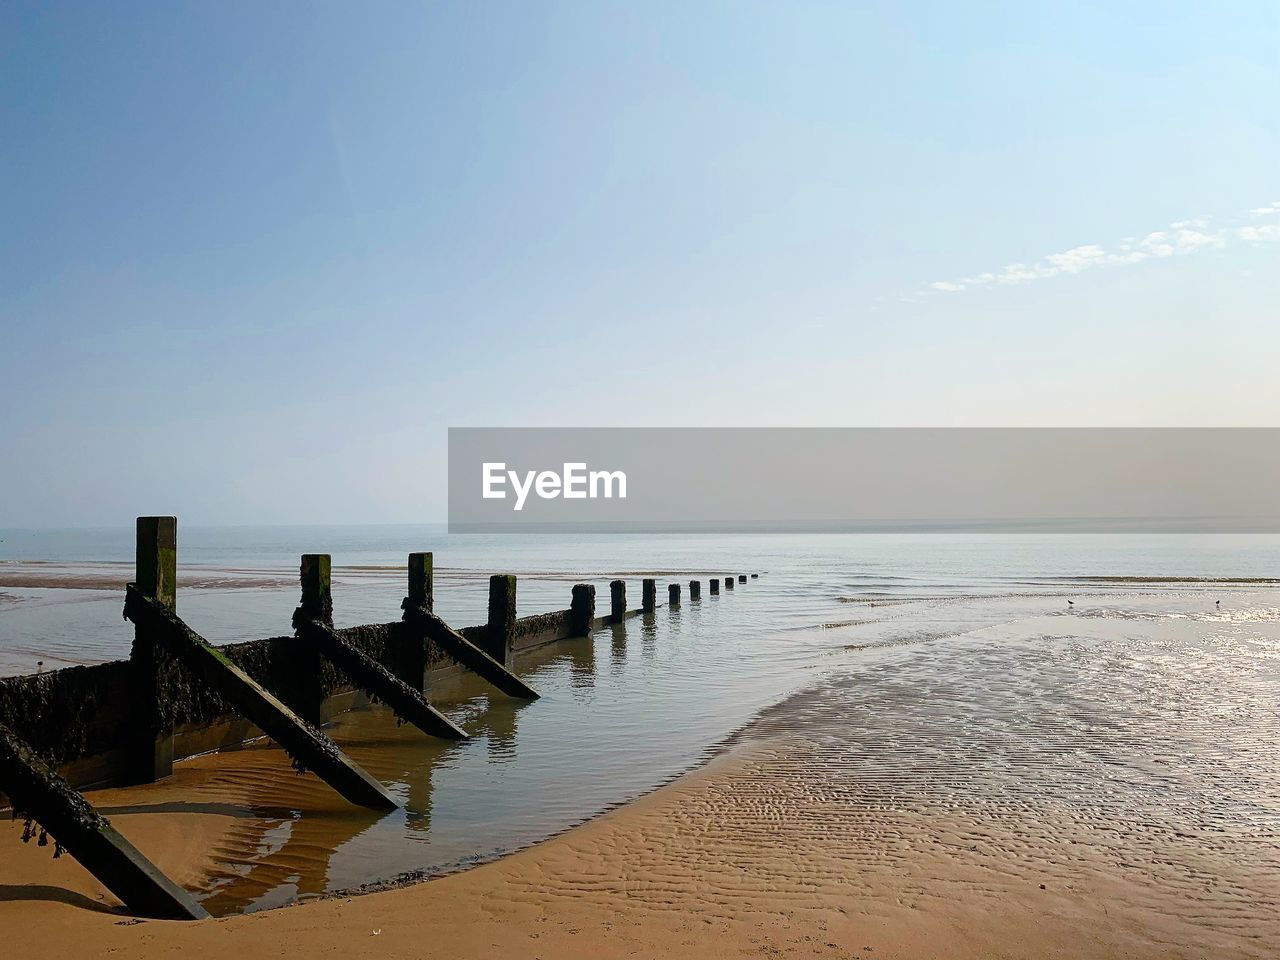 water, sky, beauty in nature, scenics - nature, sea, beach, tranquil scene, wood - material, horizon, tranquility, wooden post, horizon over water, nature, land, post, day, sand, no people, pier, outdoors, groyne